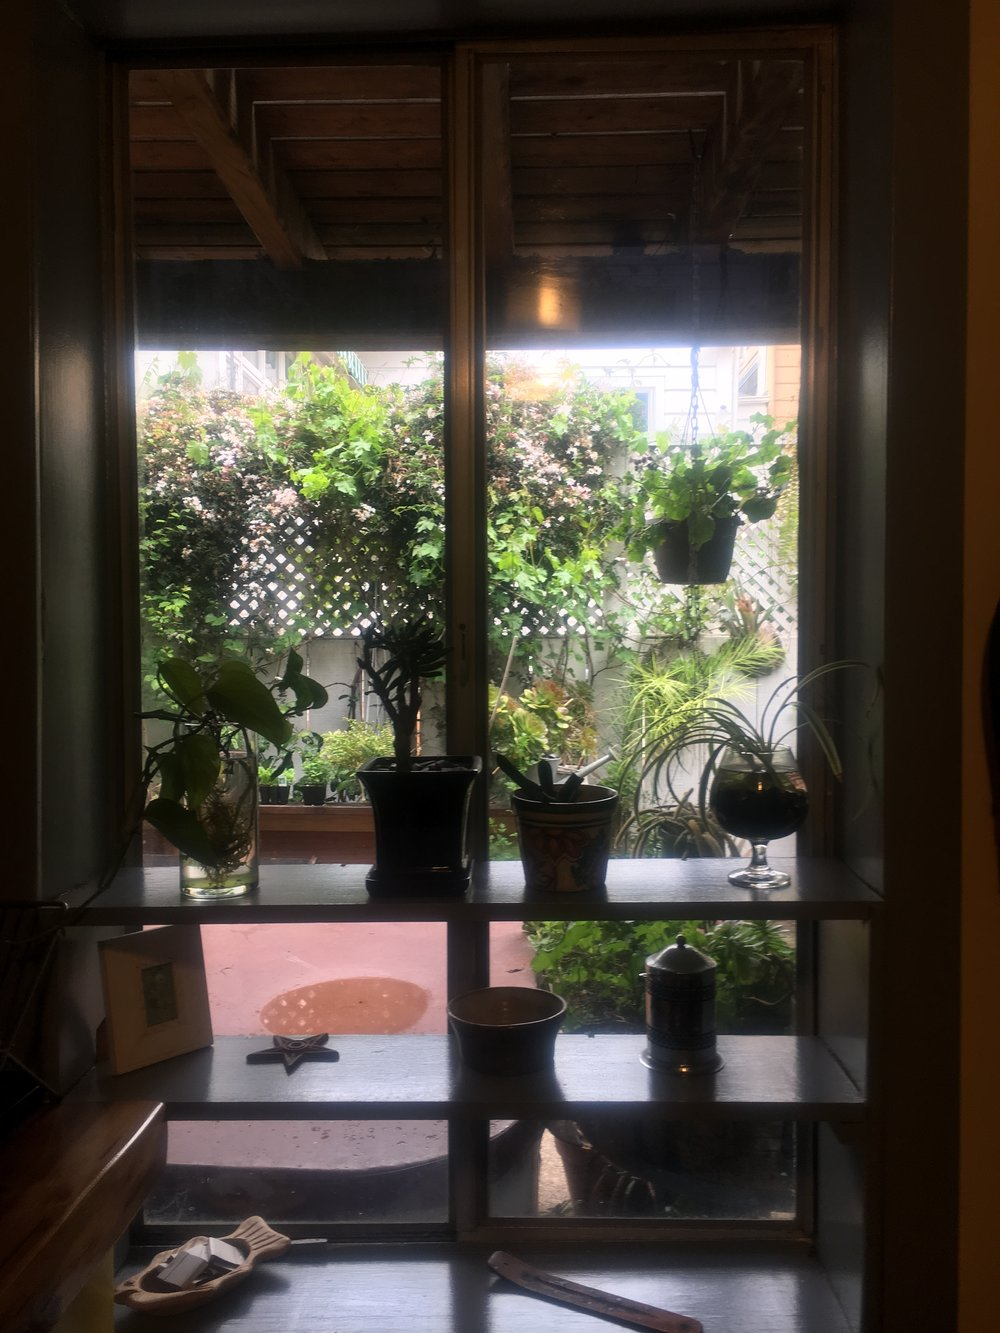 Juan & Megumi's green thumb window in SF